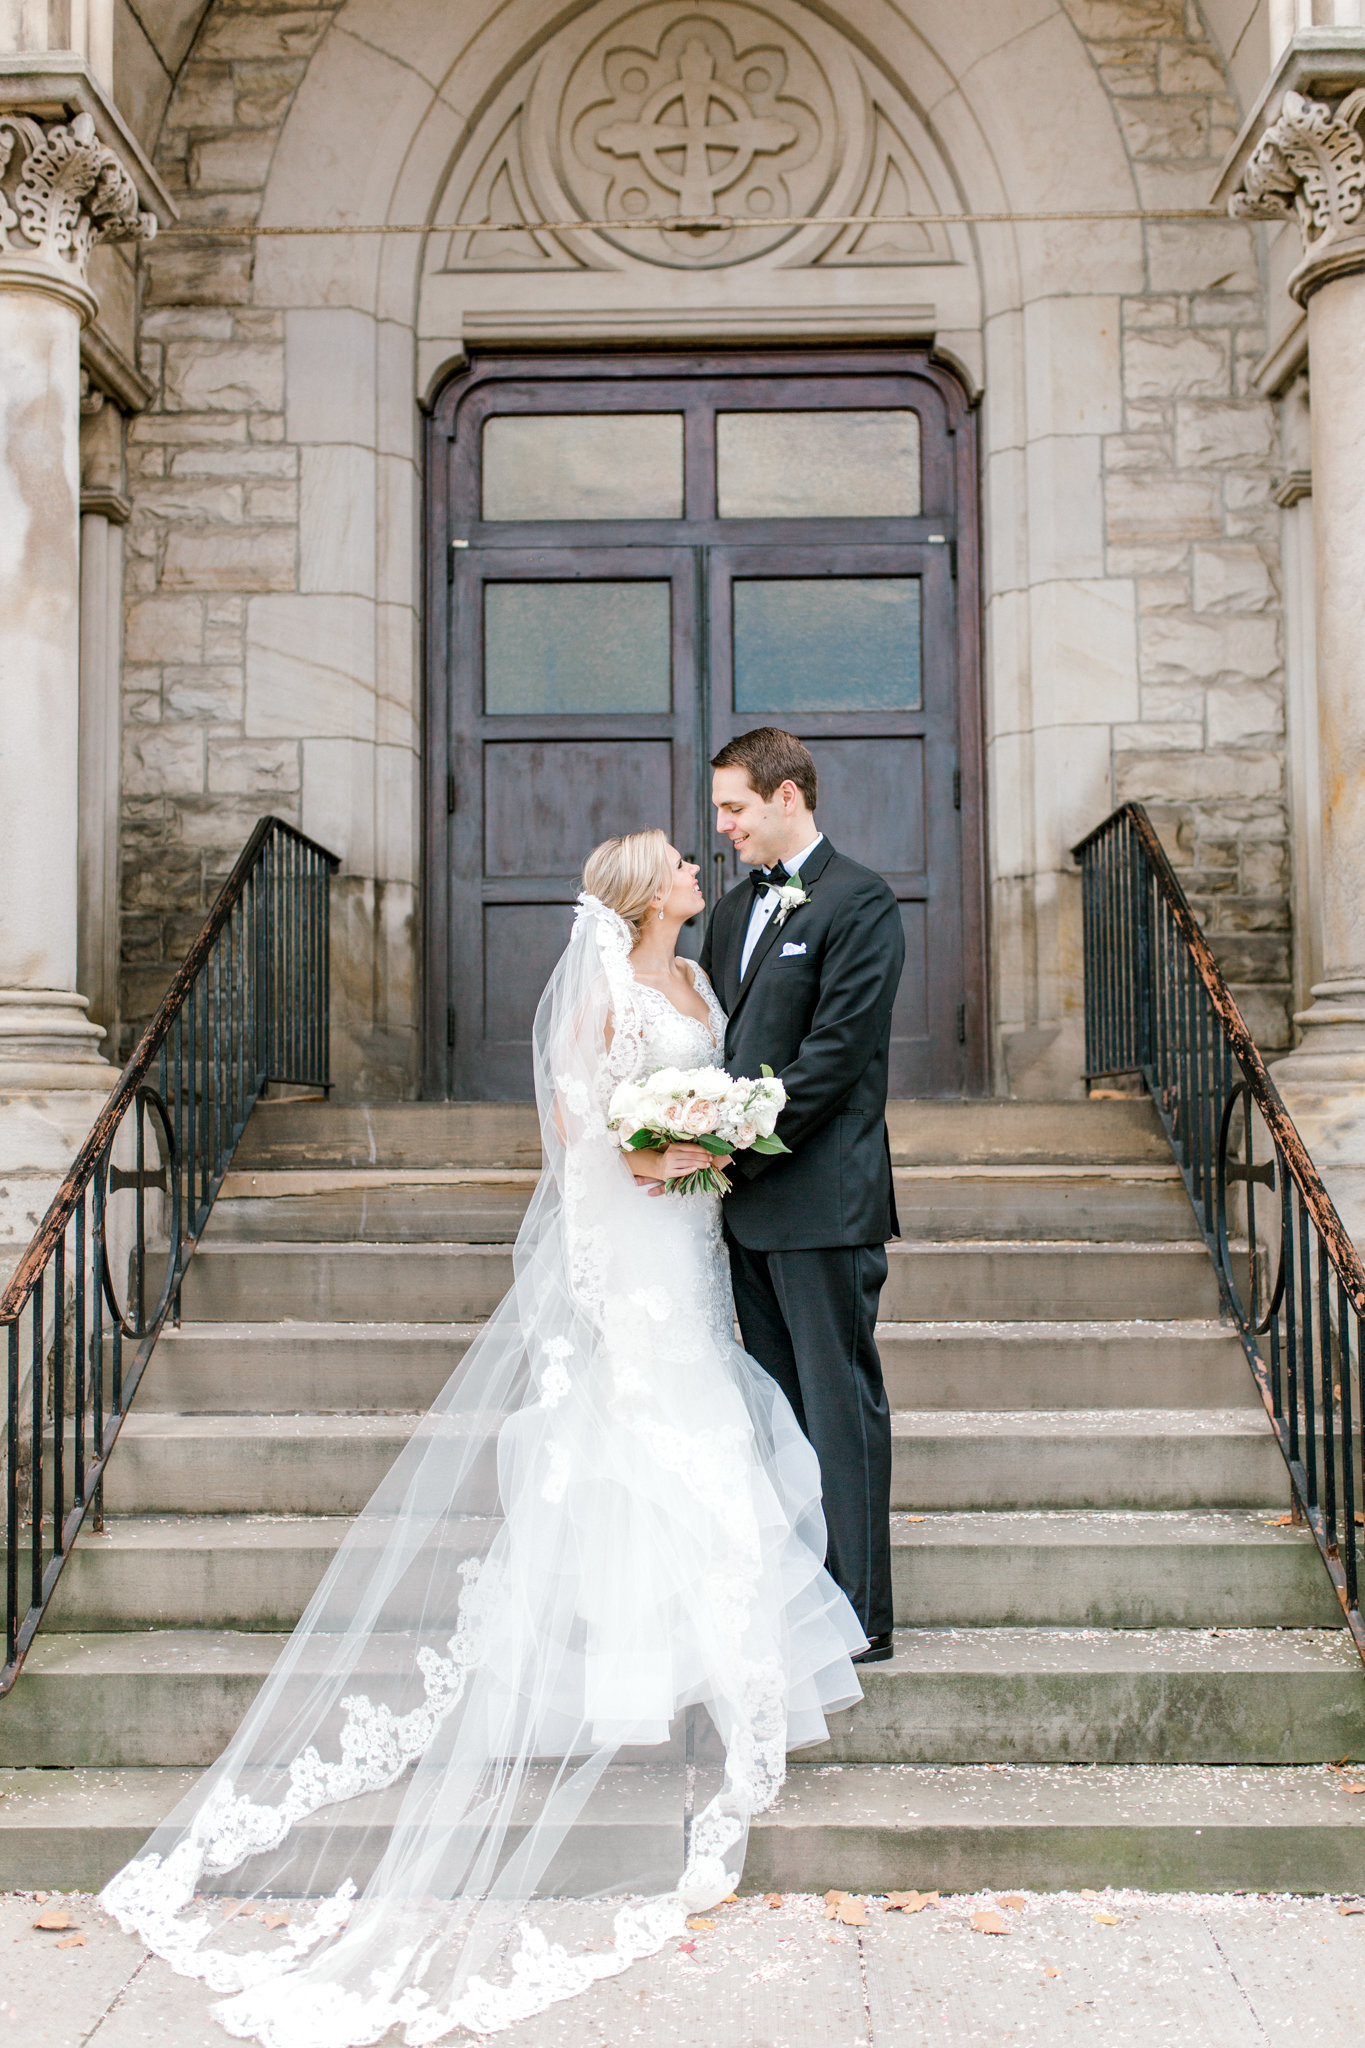 cleveland wedding photographers Austin and rachel -5505